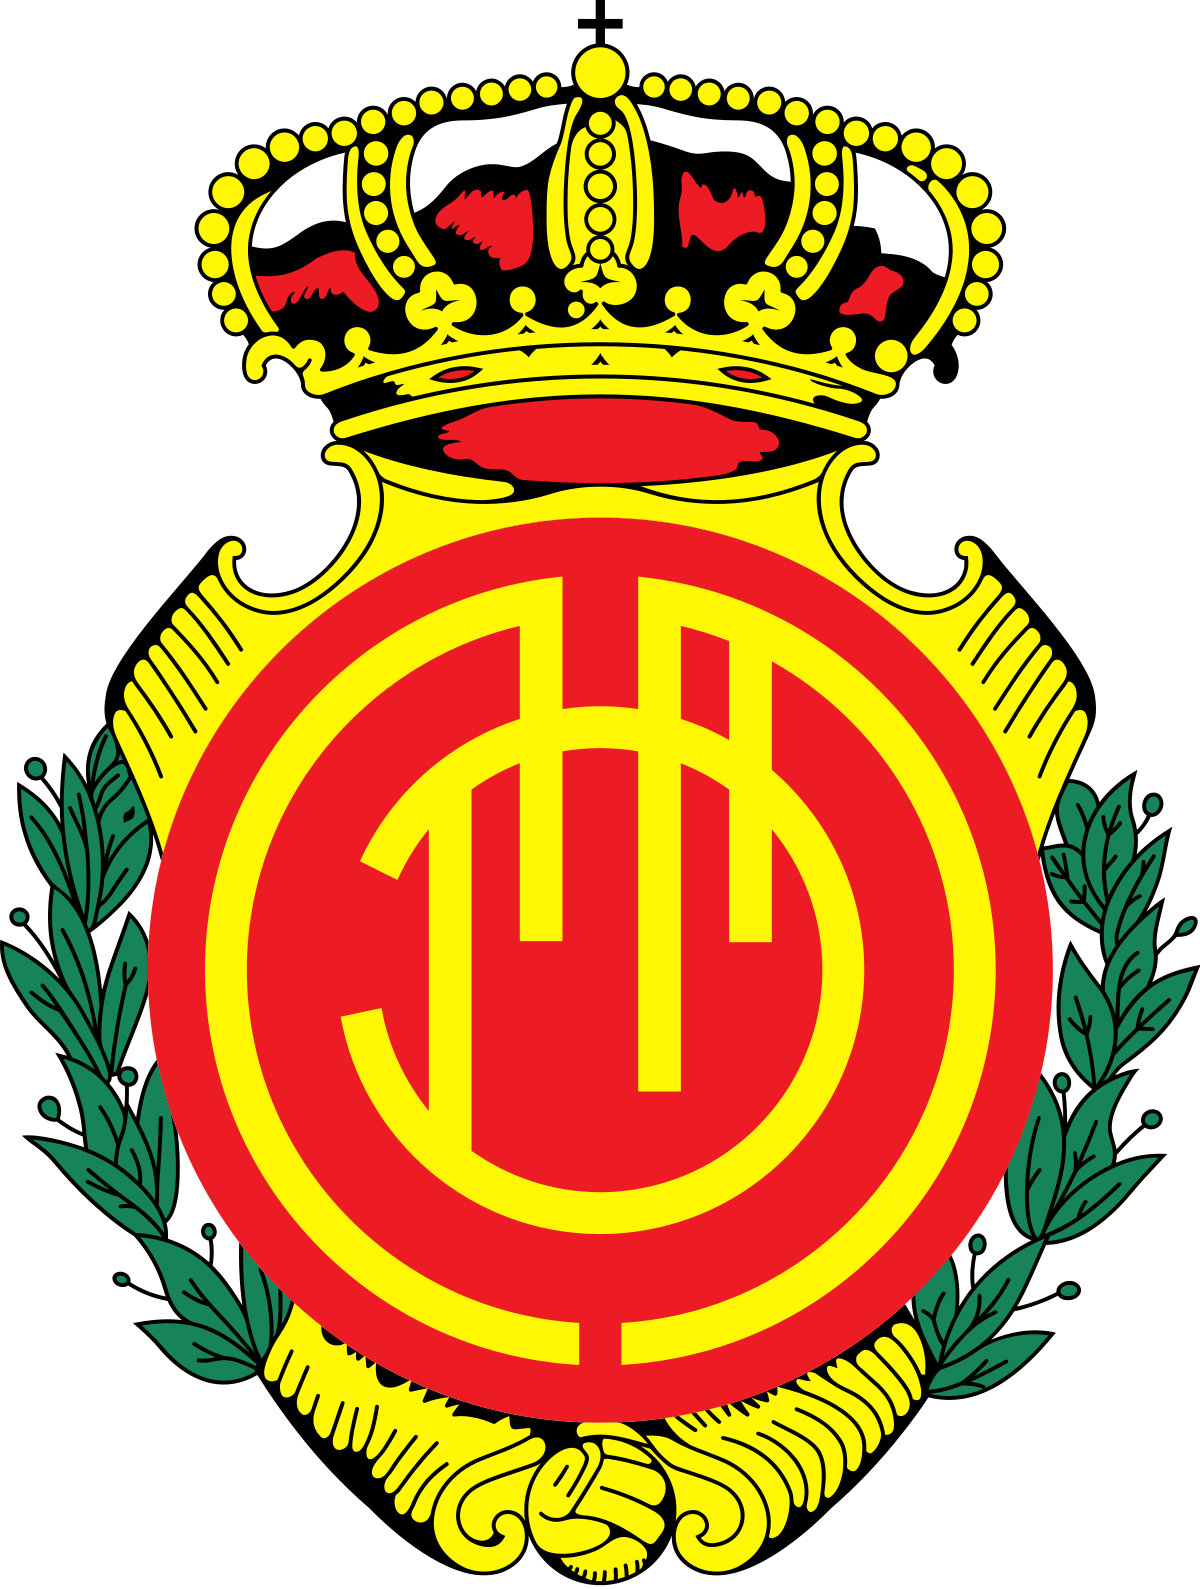 Football stadium crowd clipart picture transparent stock RCD Mallorca - Wikipedia picture transparent stock